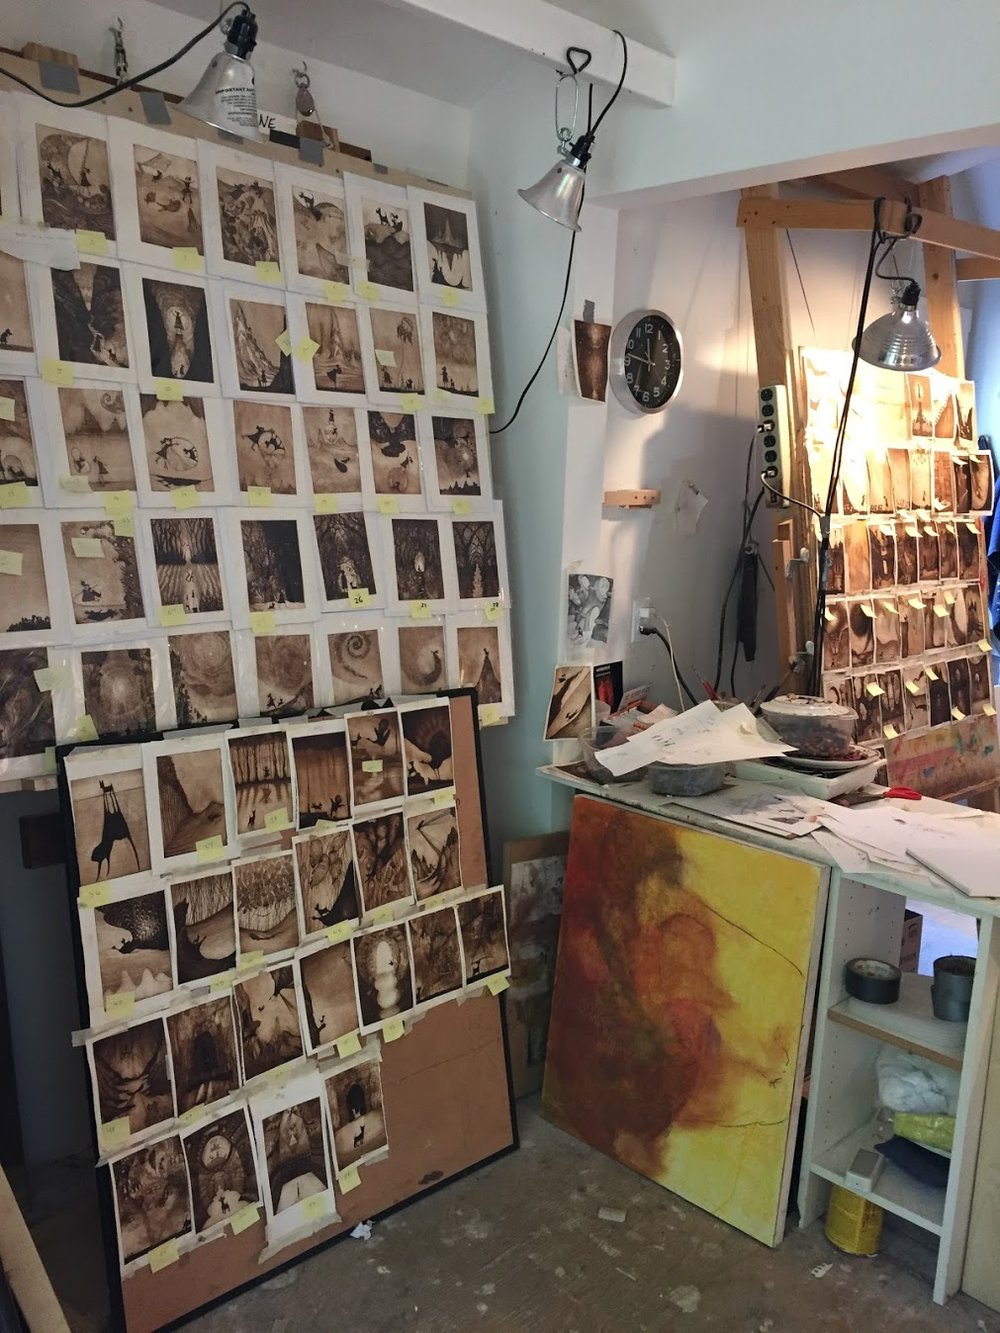 A look inside Doug's studio.